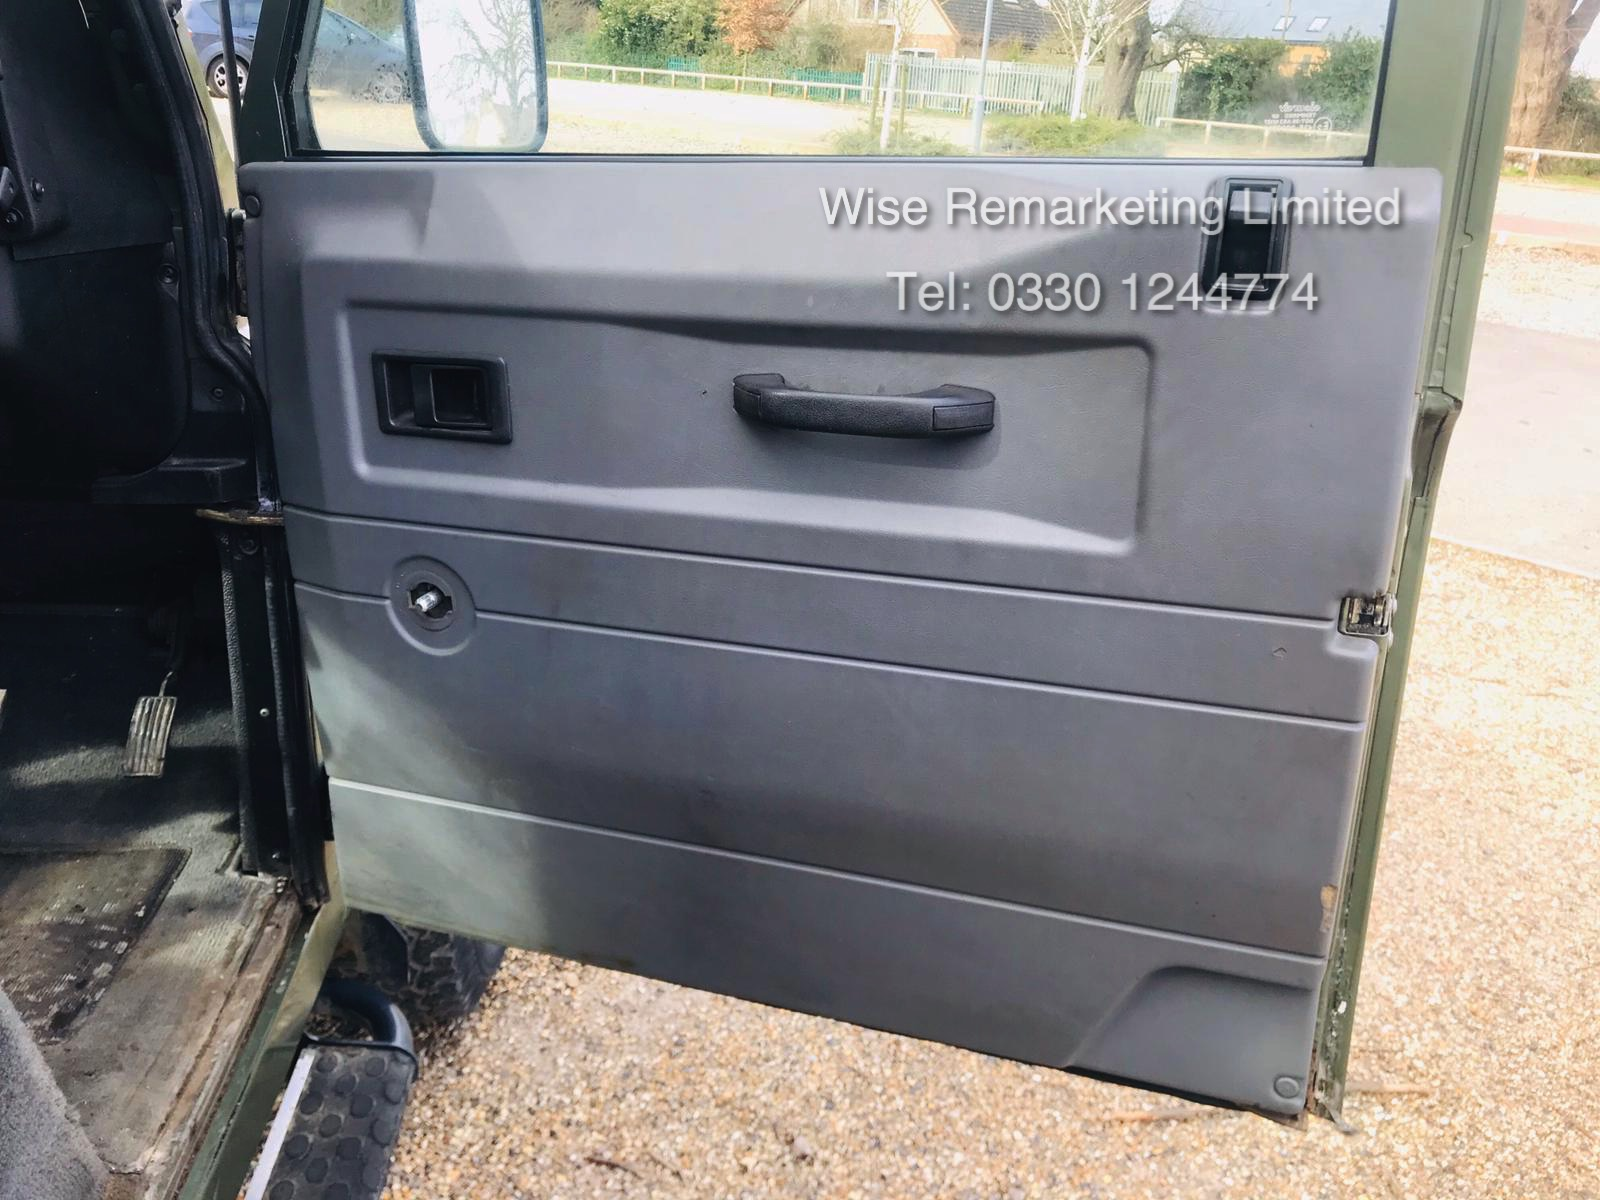 Land Rover Defender 90 County 2.5 TD5 - 2000 Year W Reg - 7 Seater - RARE - SAVE 20% NO VAT - Image 10 of 12